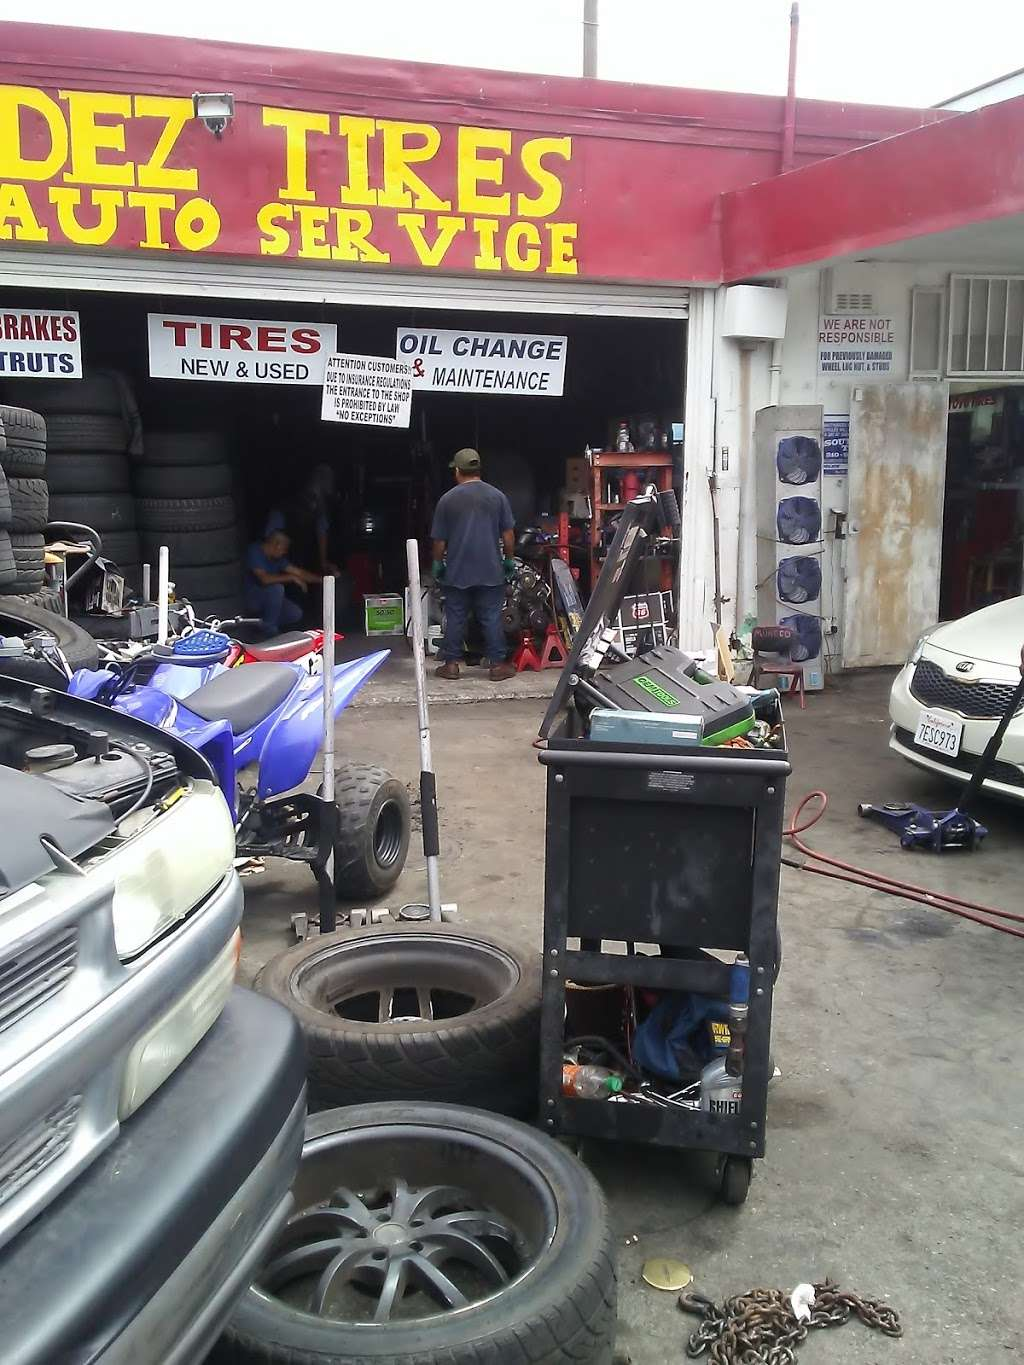 Mendez Tires And Auto Service - car repair  | Photo 5 of 10 | Address: 541 E Redondo Beach Blvd, Gardena, CA 90248, USA | Phone: (424) 329-3585